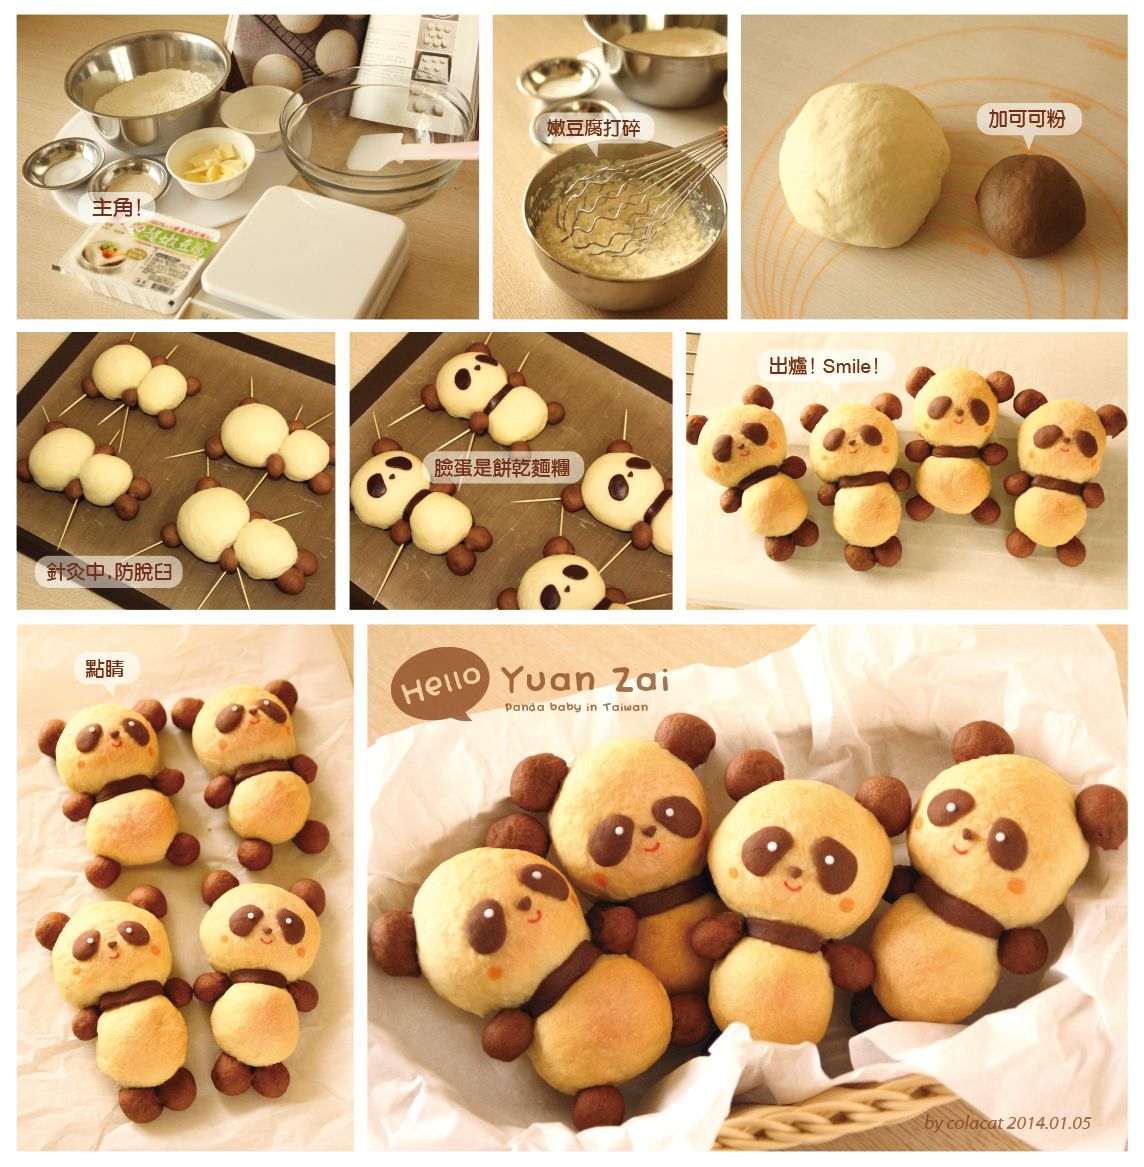 Taiwanese baby panda yuan zai bread copyright c colacat recipes forumfinder Image collections